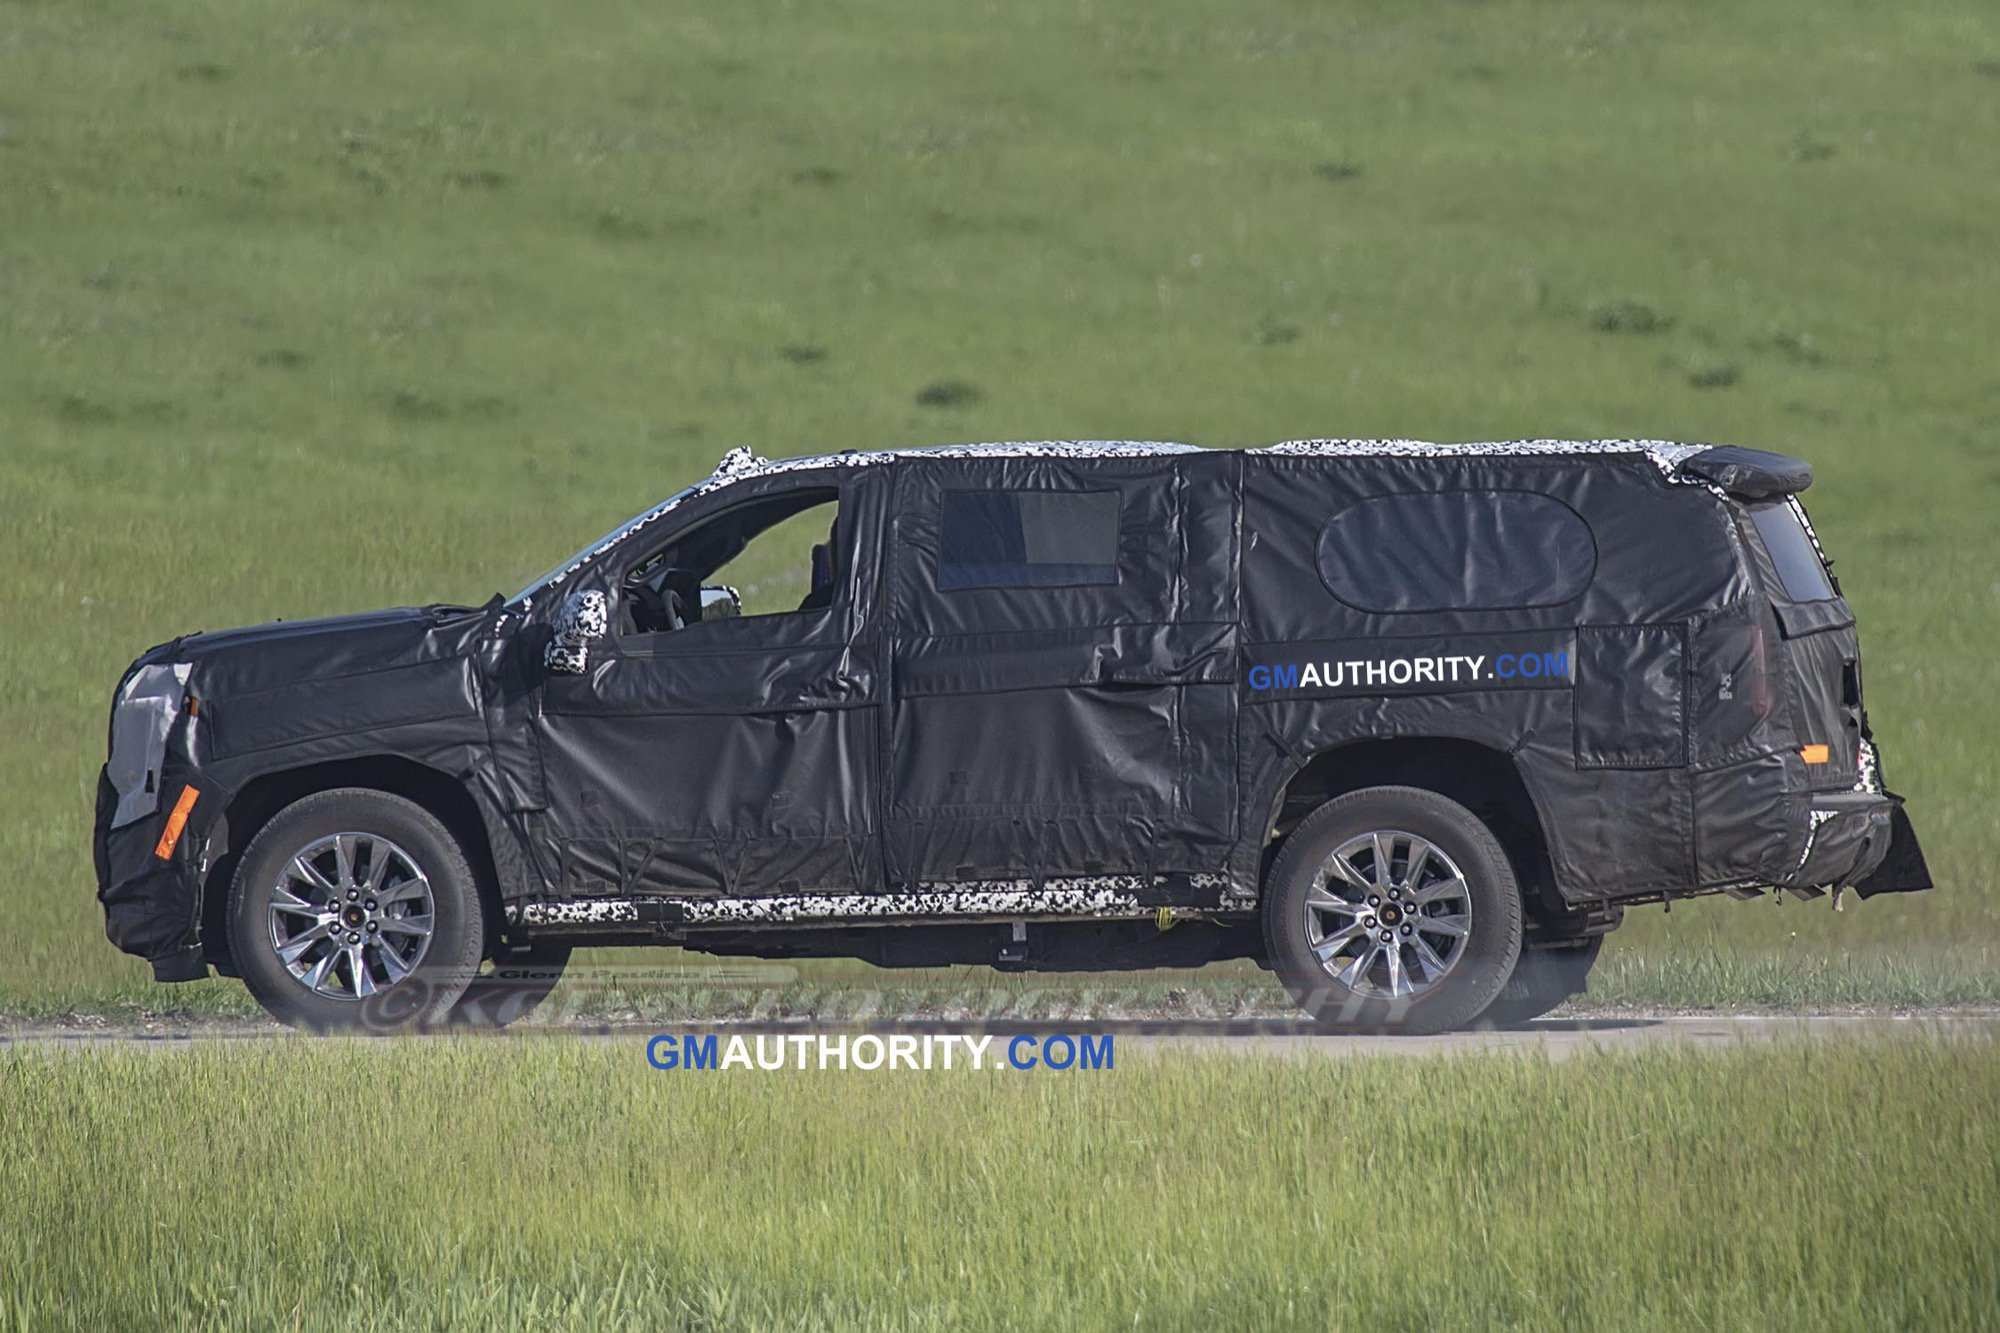 61 New 2020 Chevy Suburban Exterior